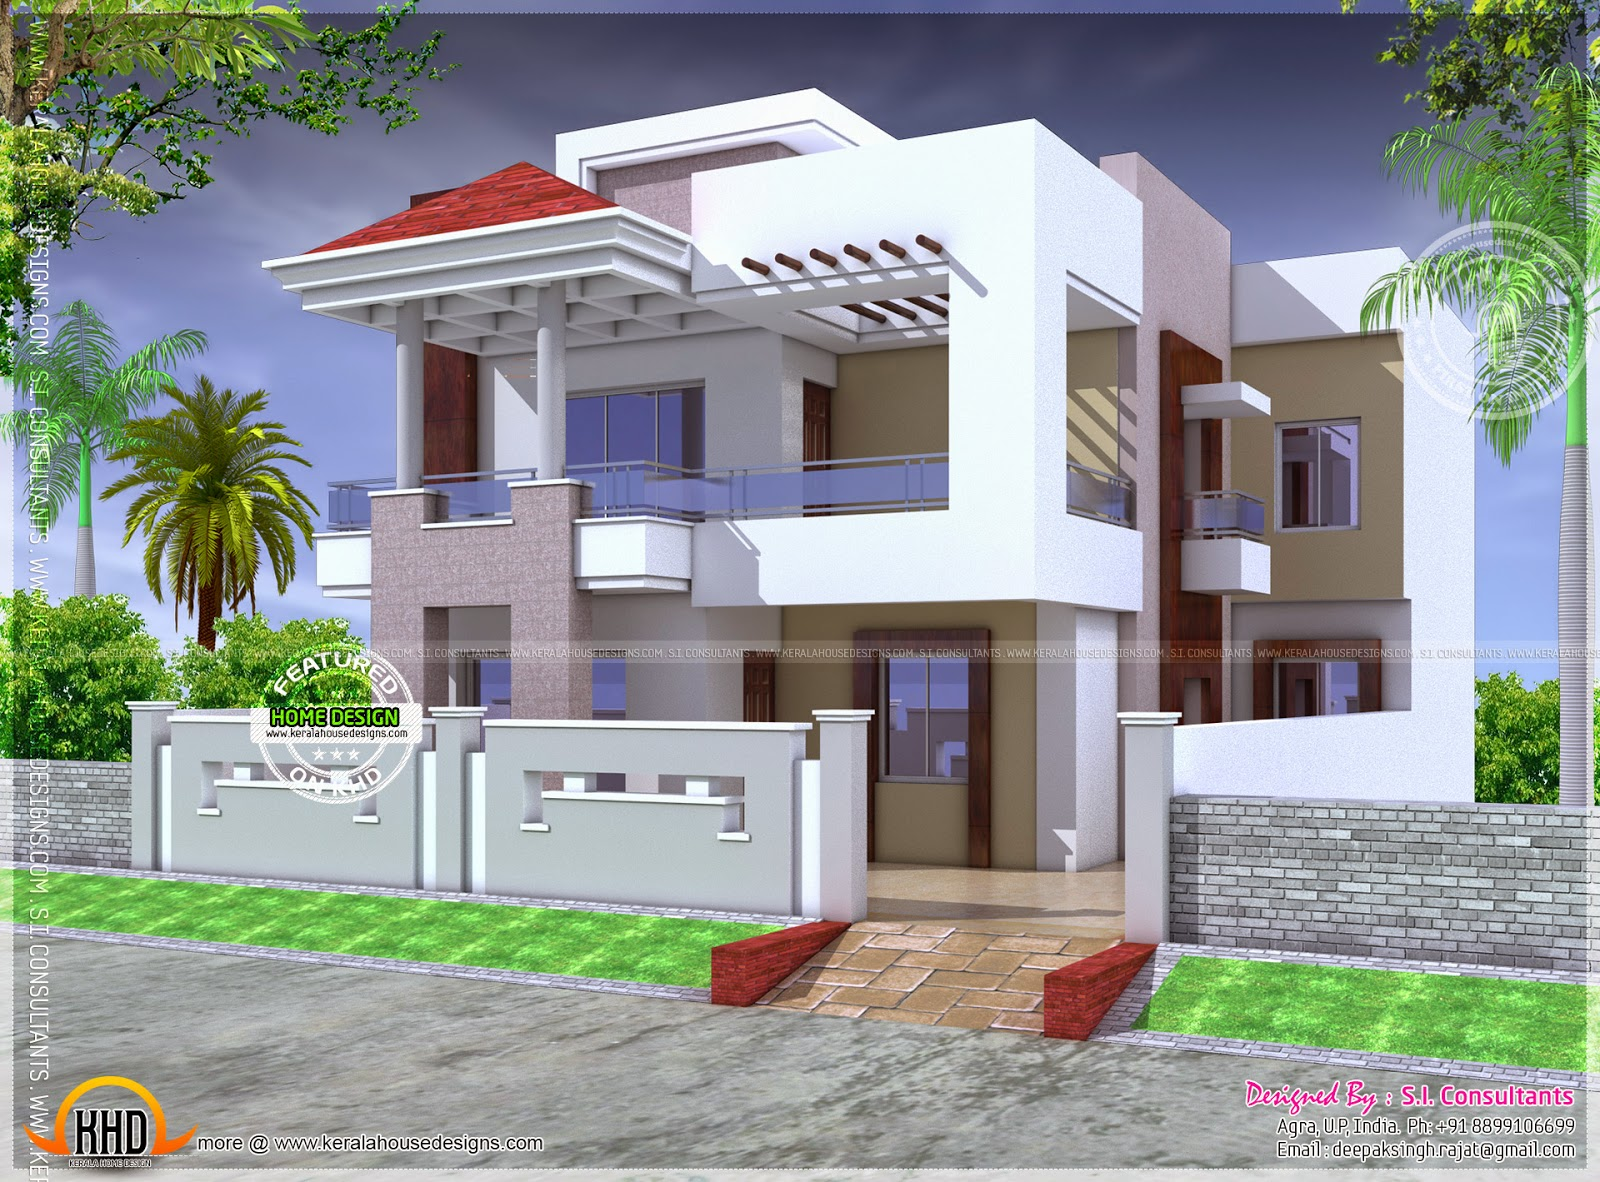 March 2014 kerala home design and floor plans for Architecture design small house india